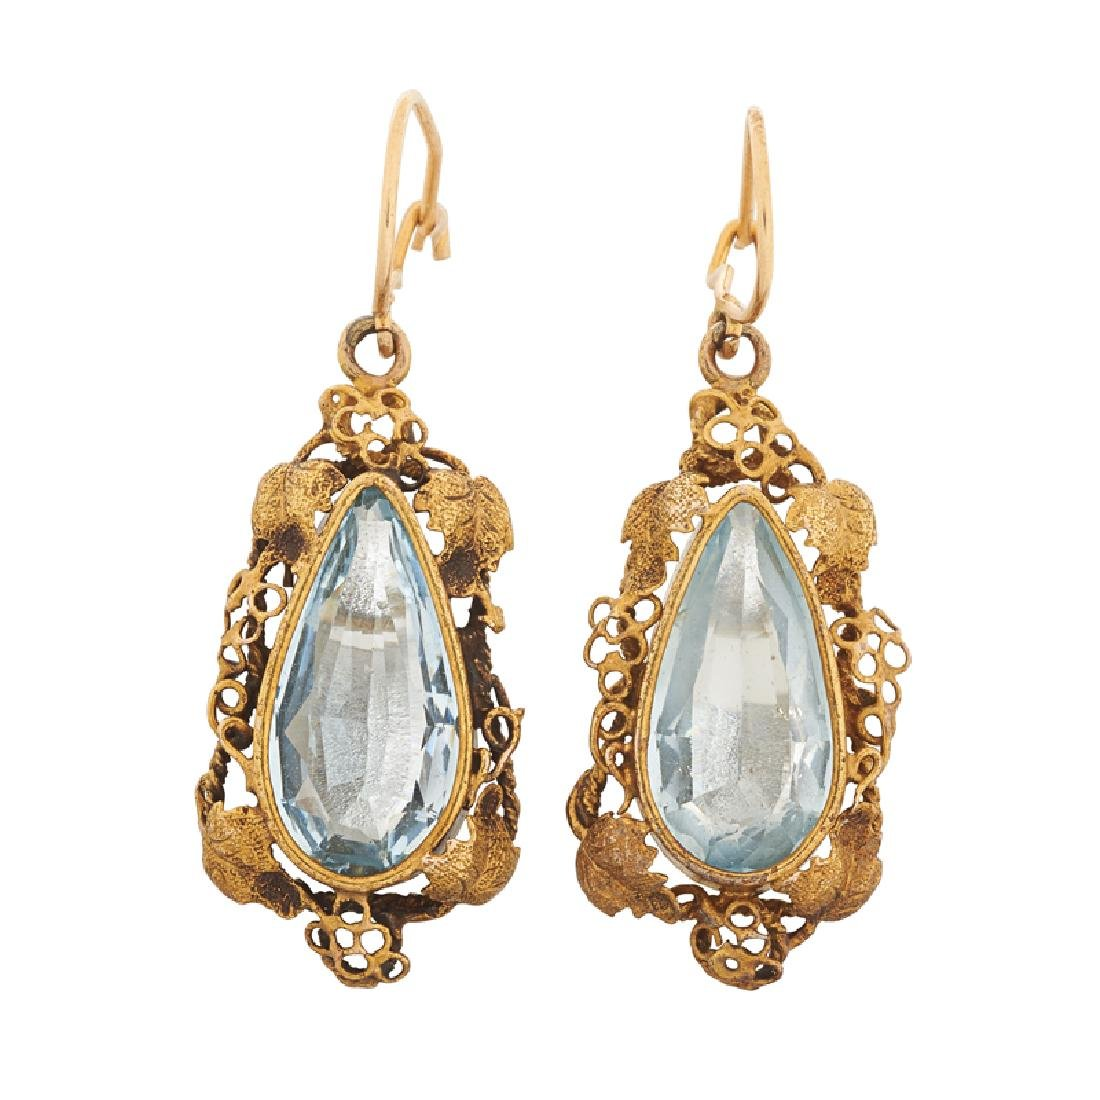 EARLY 20TH C. AQUAMARINE & YELLOW GOLD DROP EARRINGS